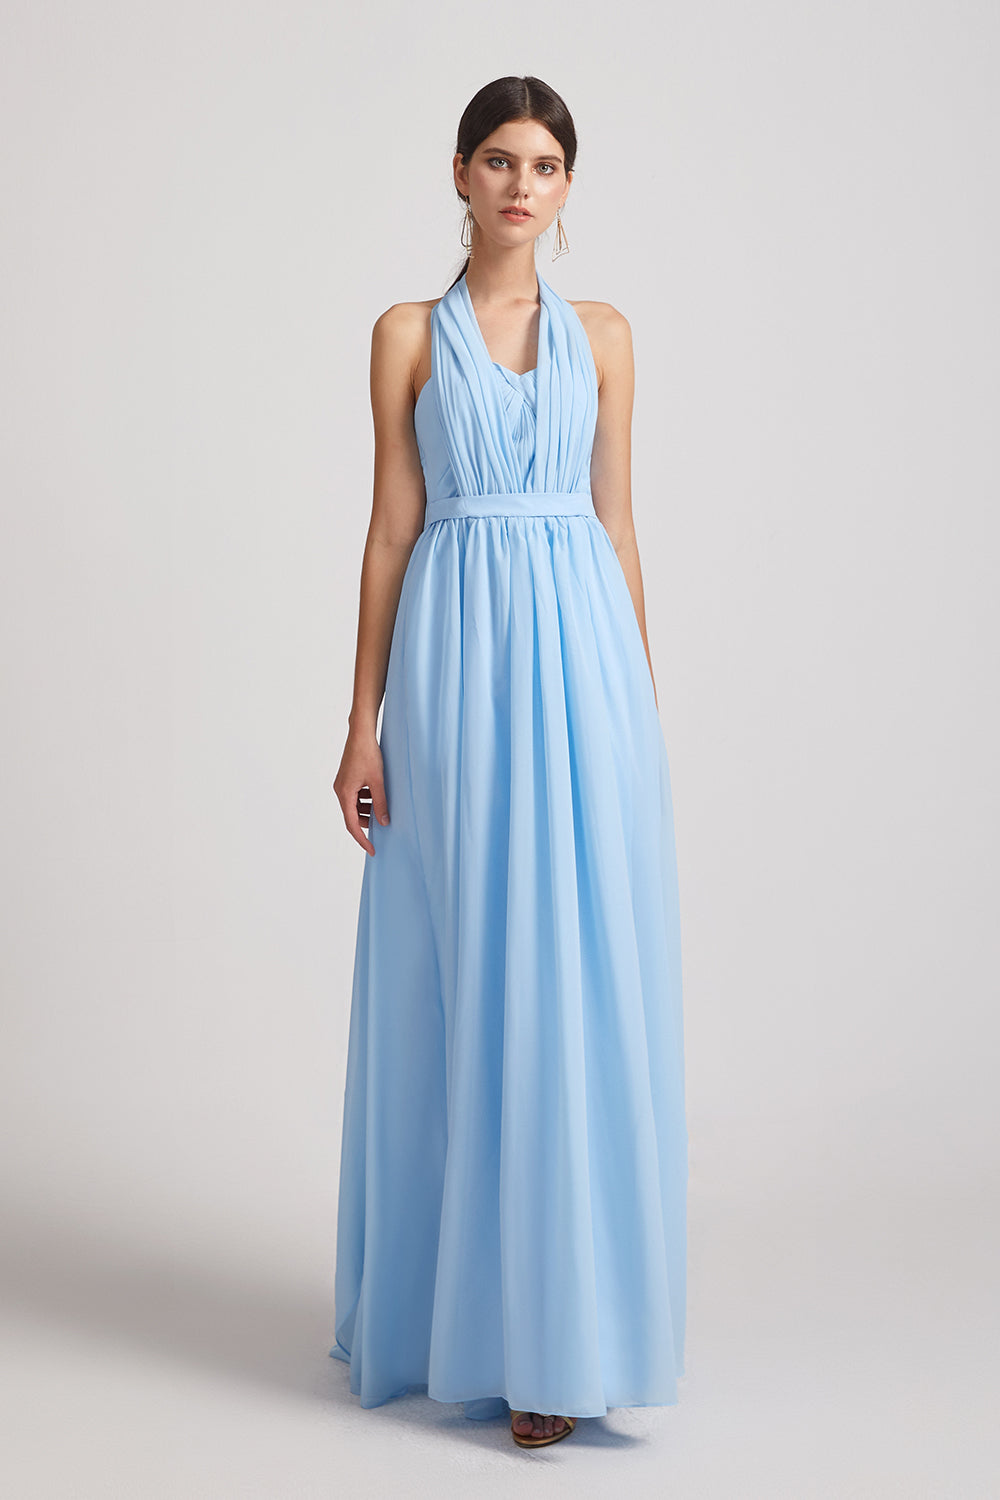 sky blue chiffon convertible bridasmaids dresses